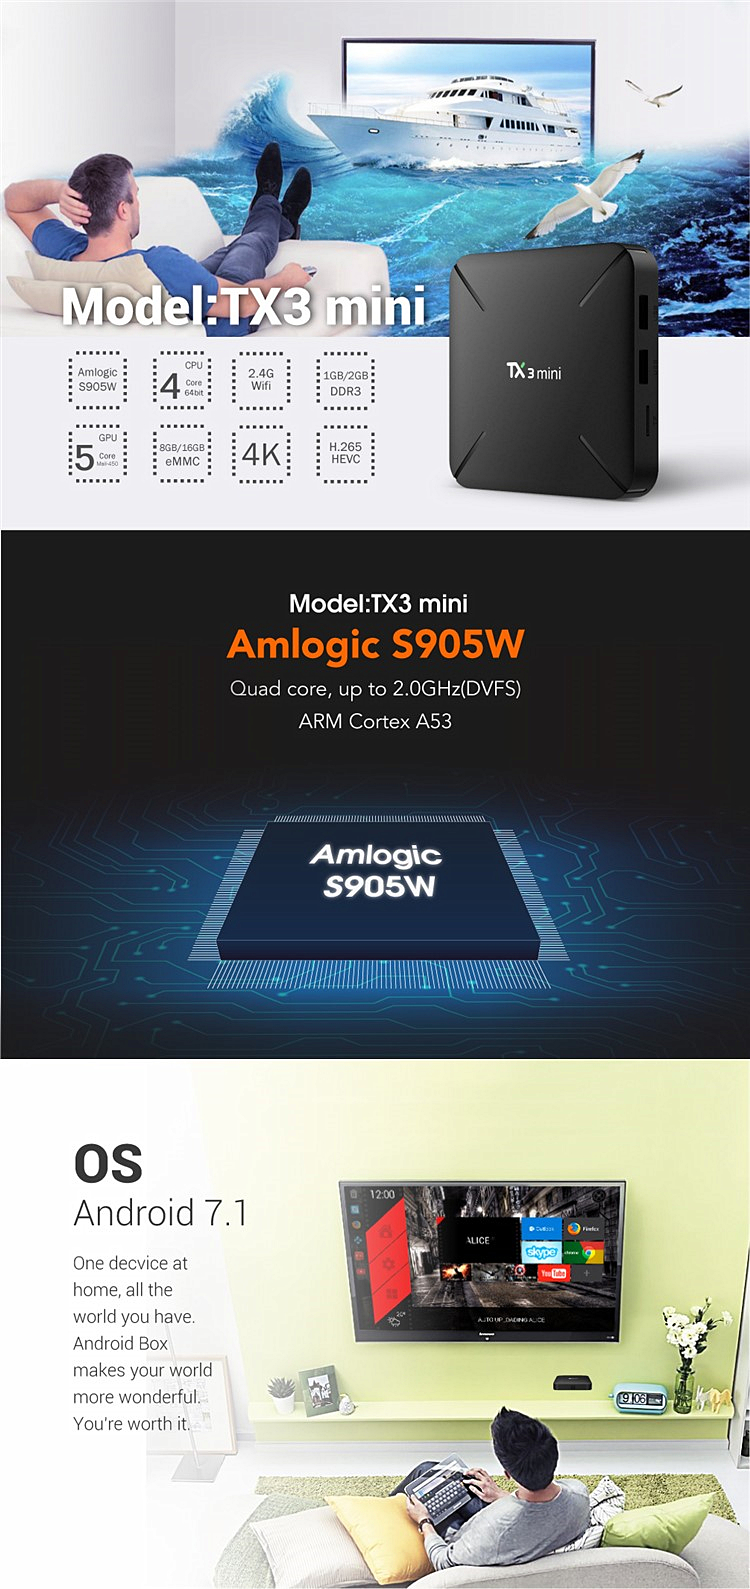 TX3 mini-H S905W 2G 16G ott firmware mini tv box internet tv box android 7.1